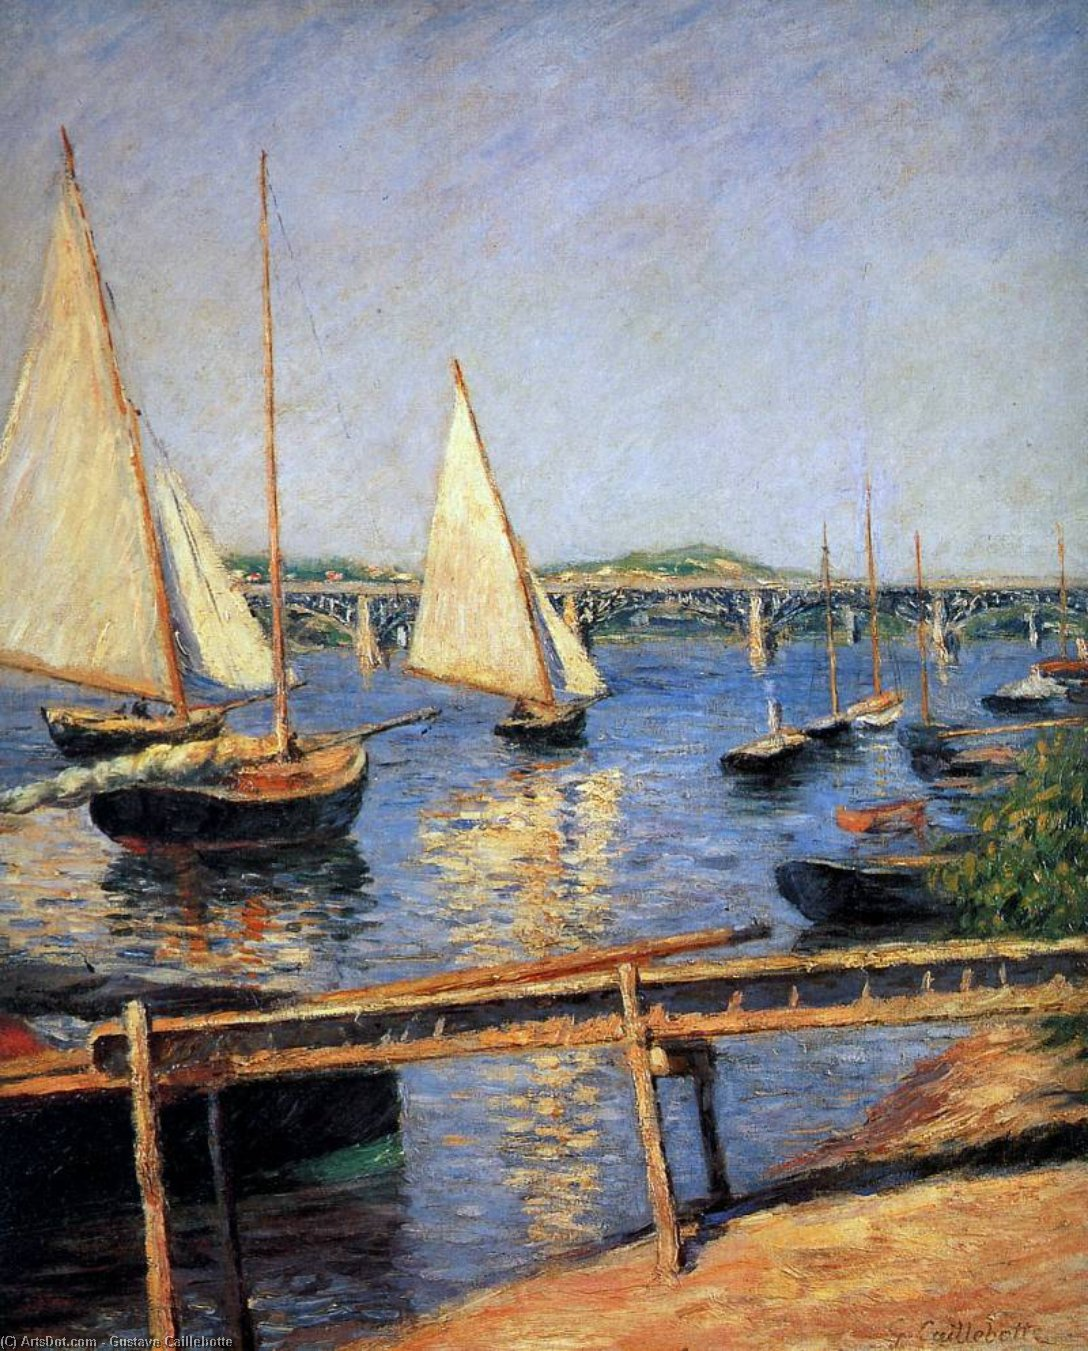 Wikioo.org - The Encyclopedia of Fine Arts - Painting, Artwork by Gustave Caillebotte - Sailing boats at Argentueil Sun